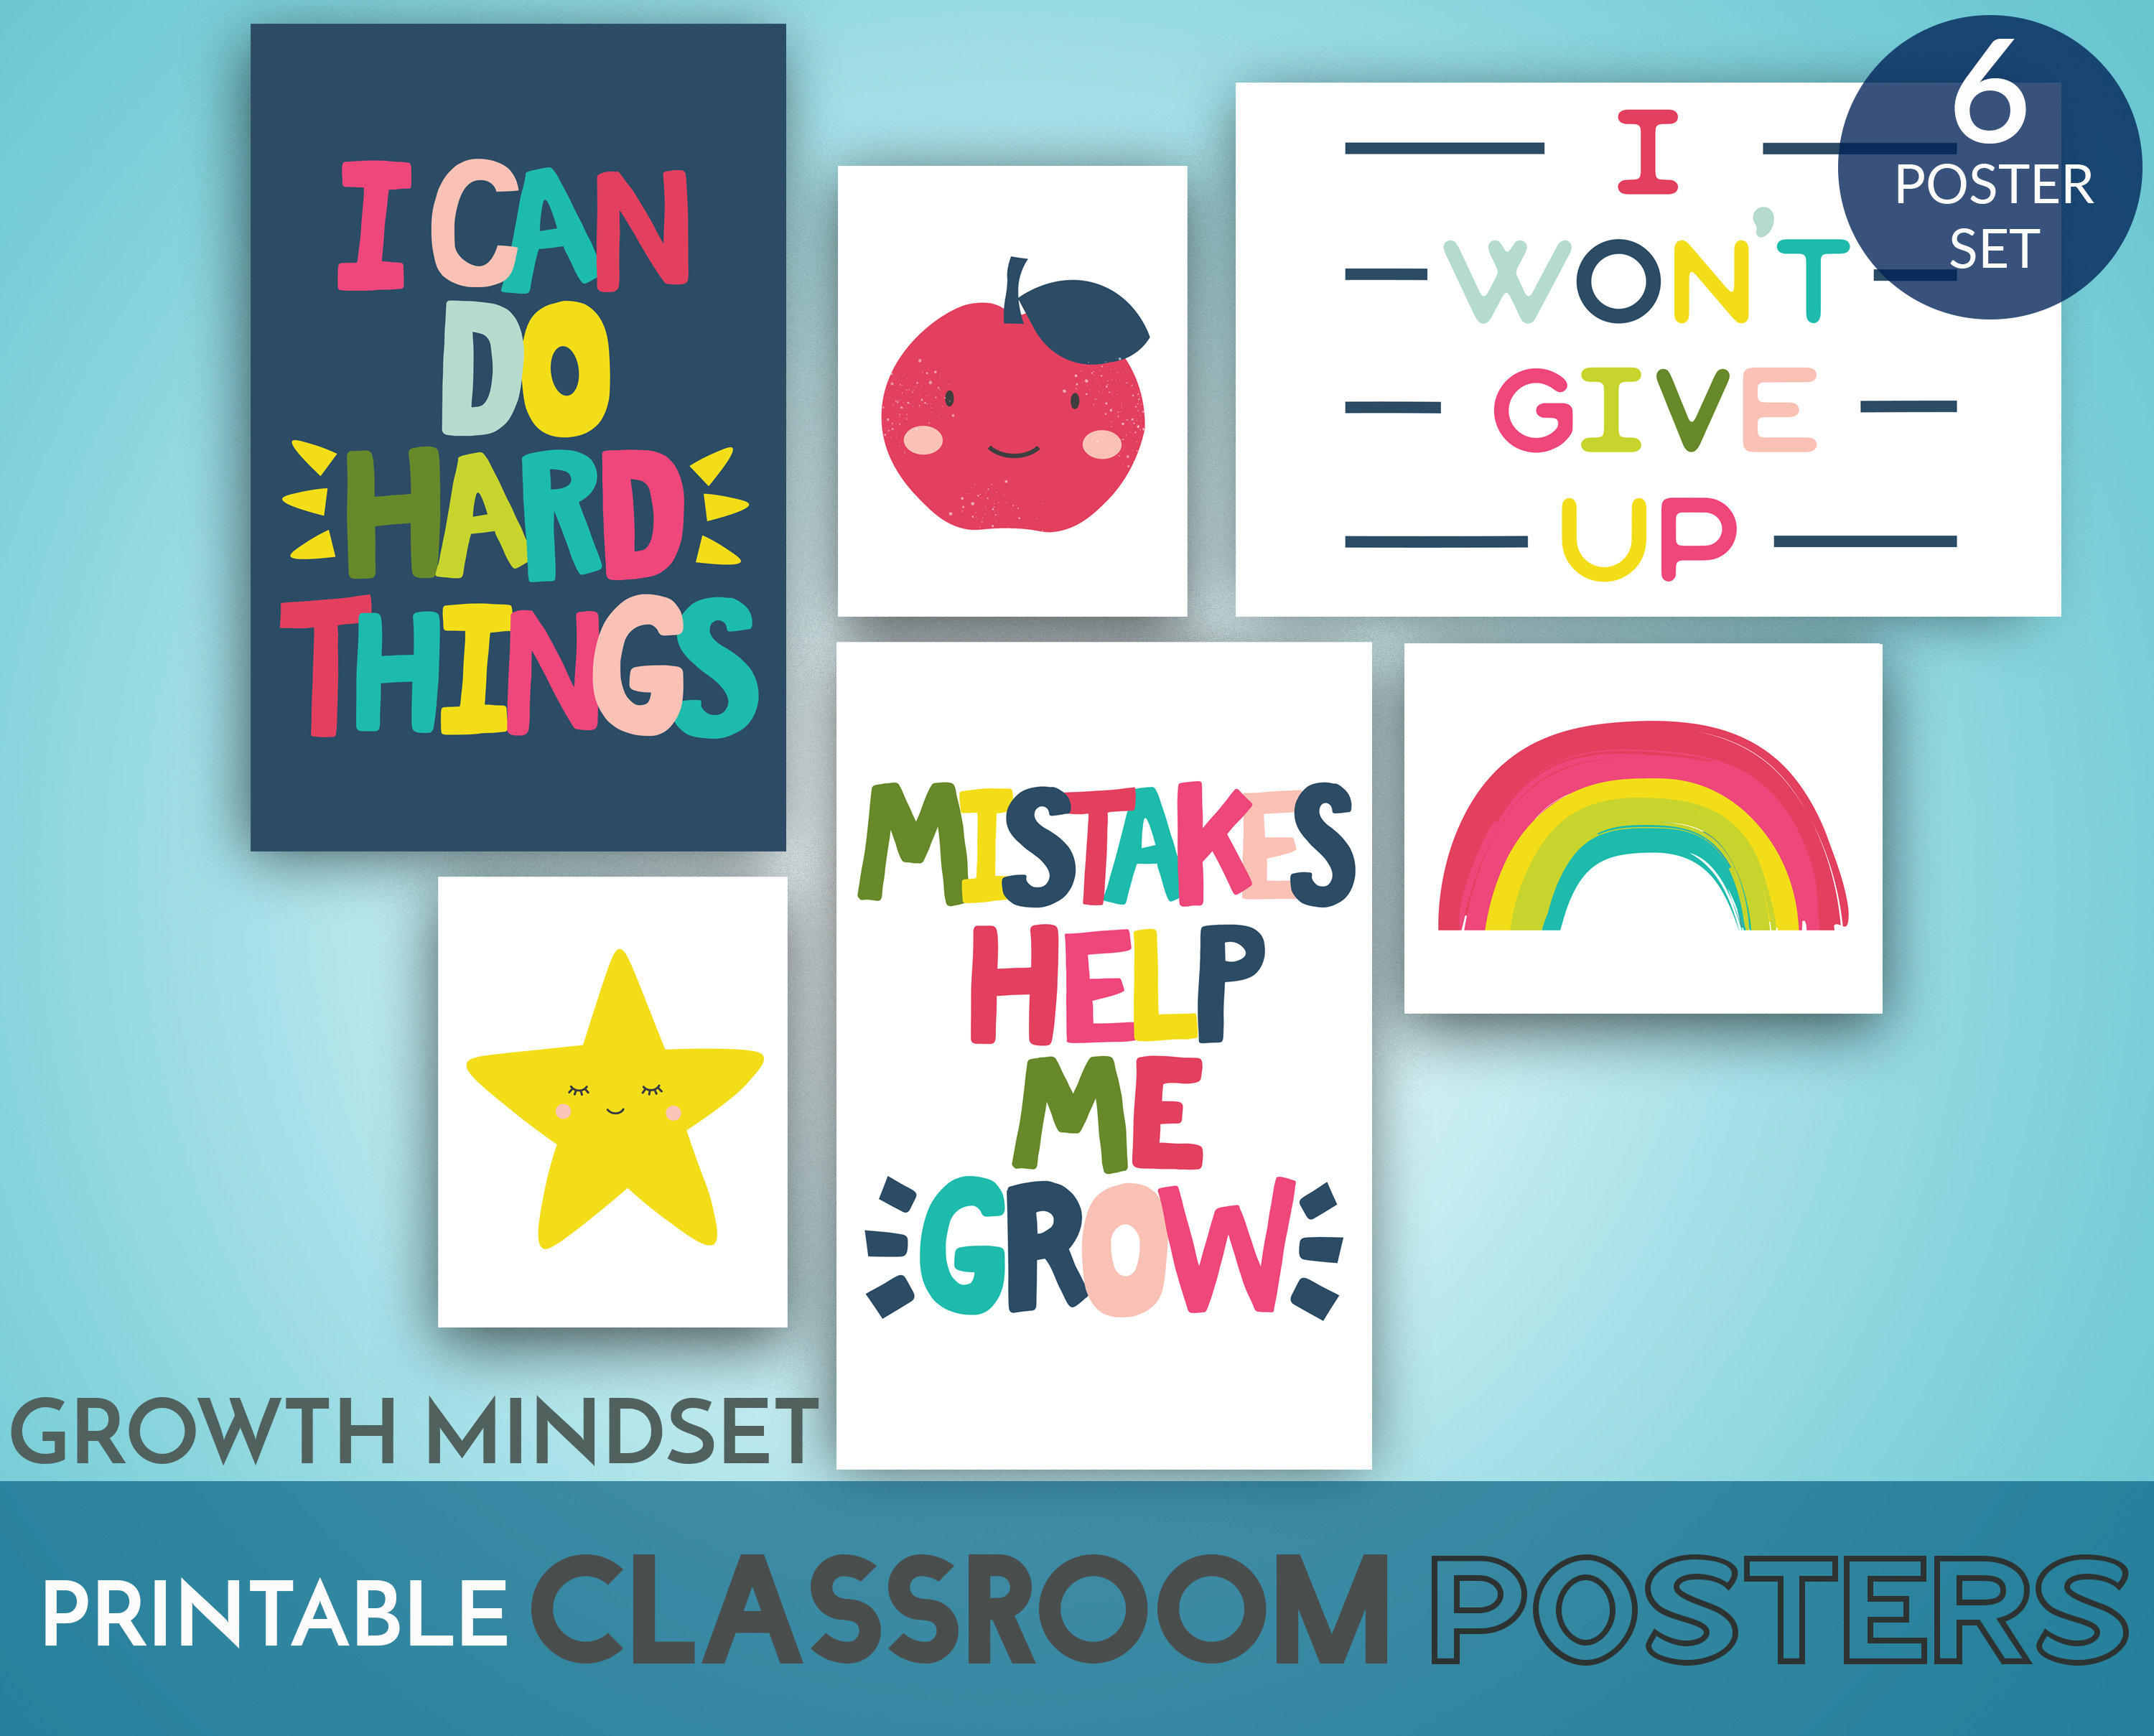 Classroom Posters Printable Set of 6 Growth Mindset for Early Years -  Preschool Kindergarten First Grade Classroom Decor Instant Download